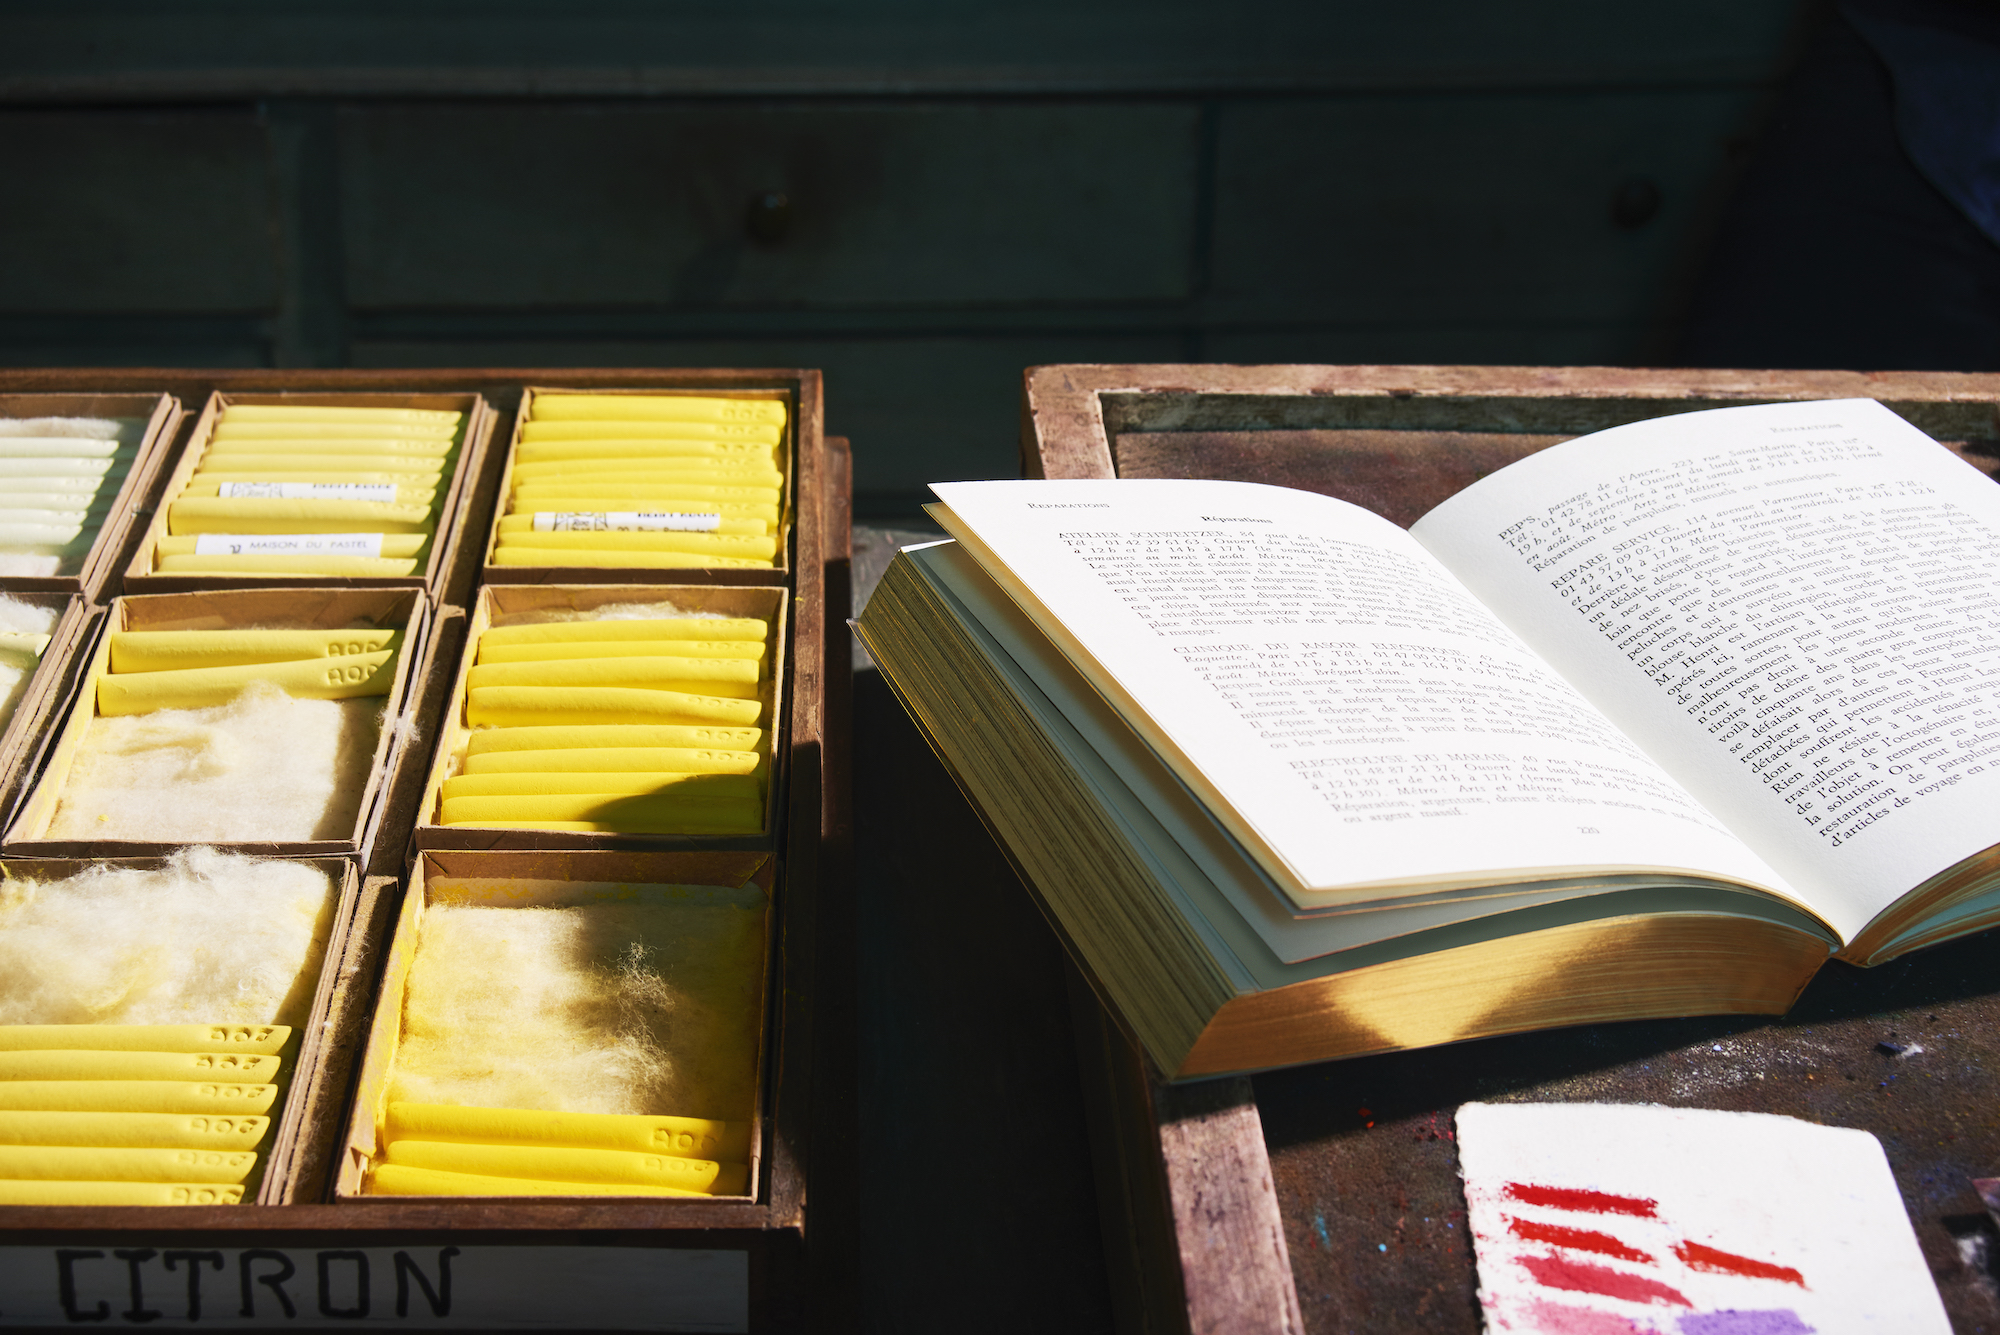 A book by Astier de Vilatte, with gold trim, opened on a wooden tray, outside in the sun.